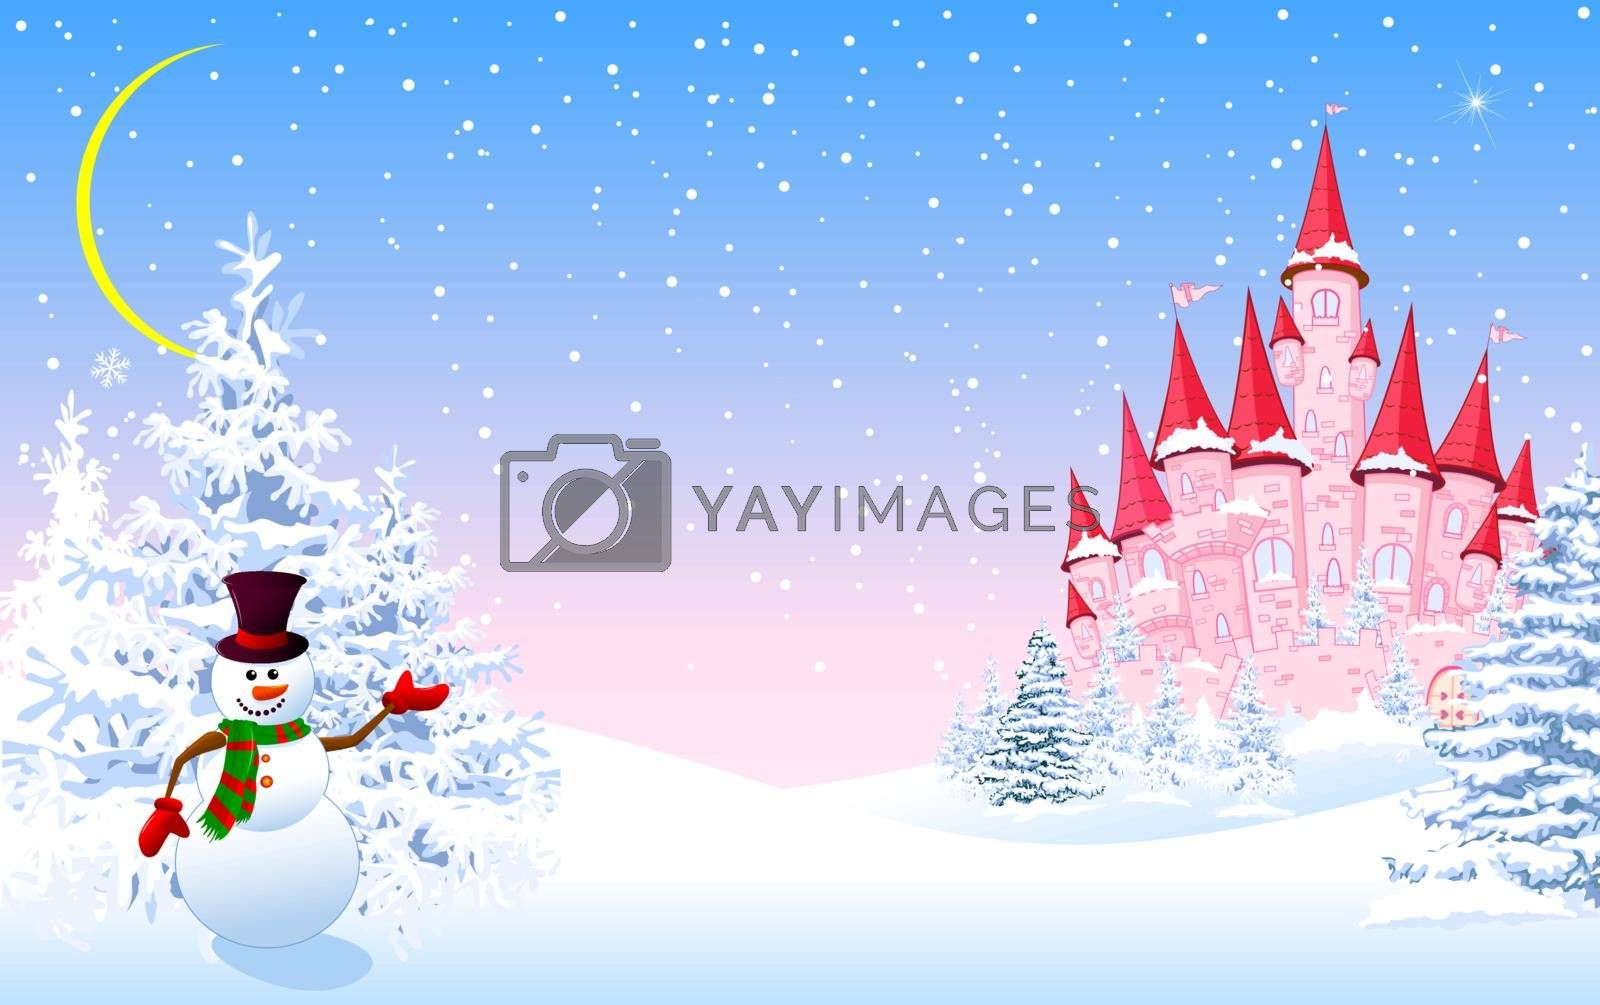 Cartoon pink castle and a snowman on a background of a winter snowy forest. Winter landscape with a pink castle.